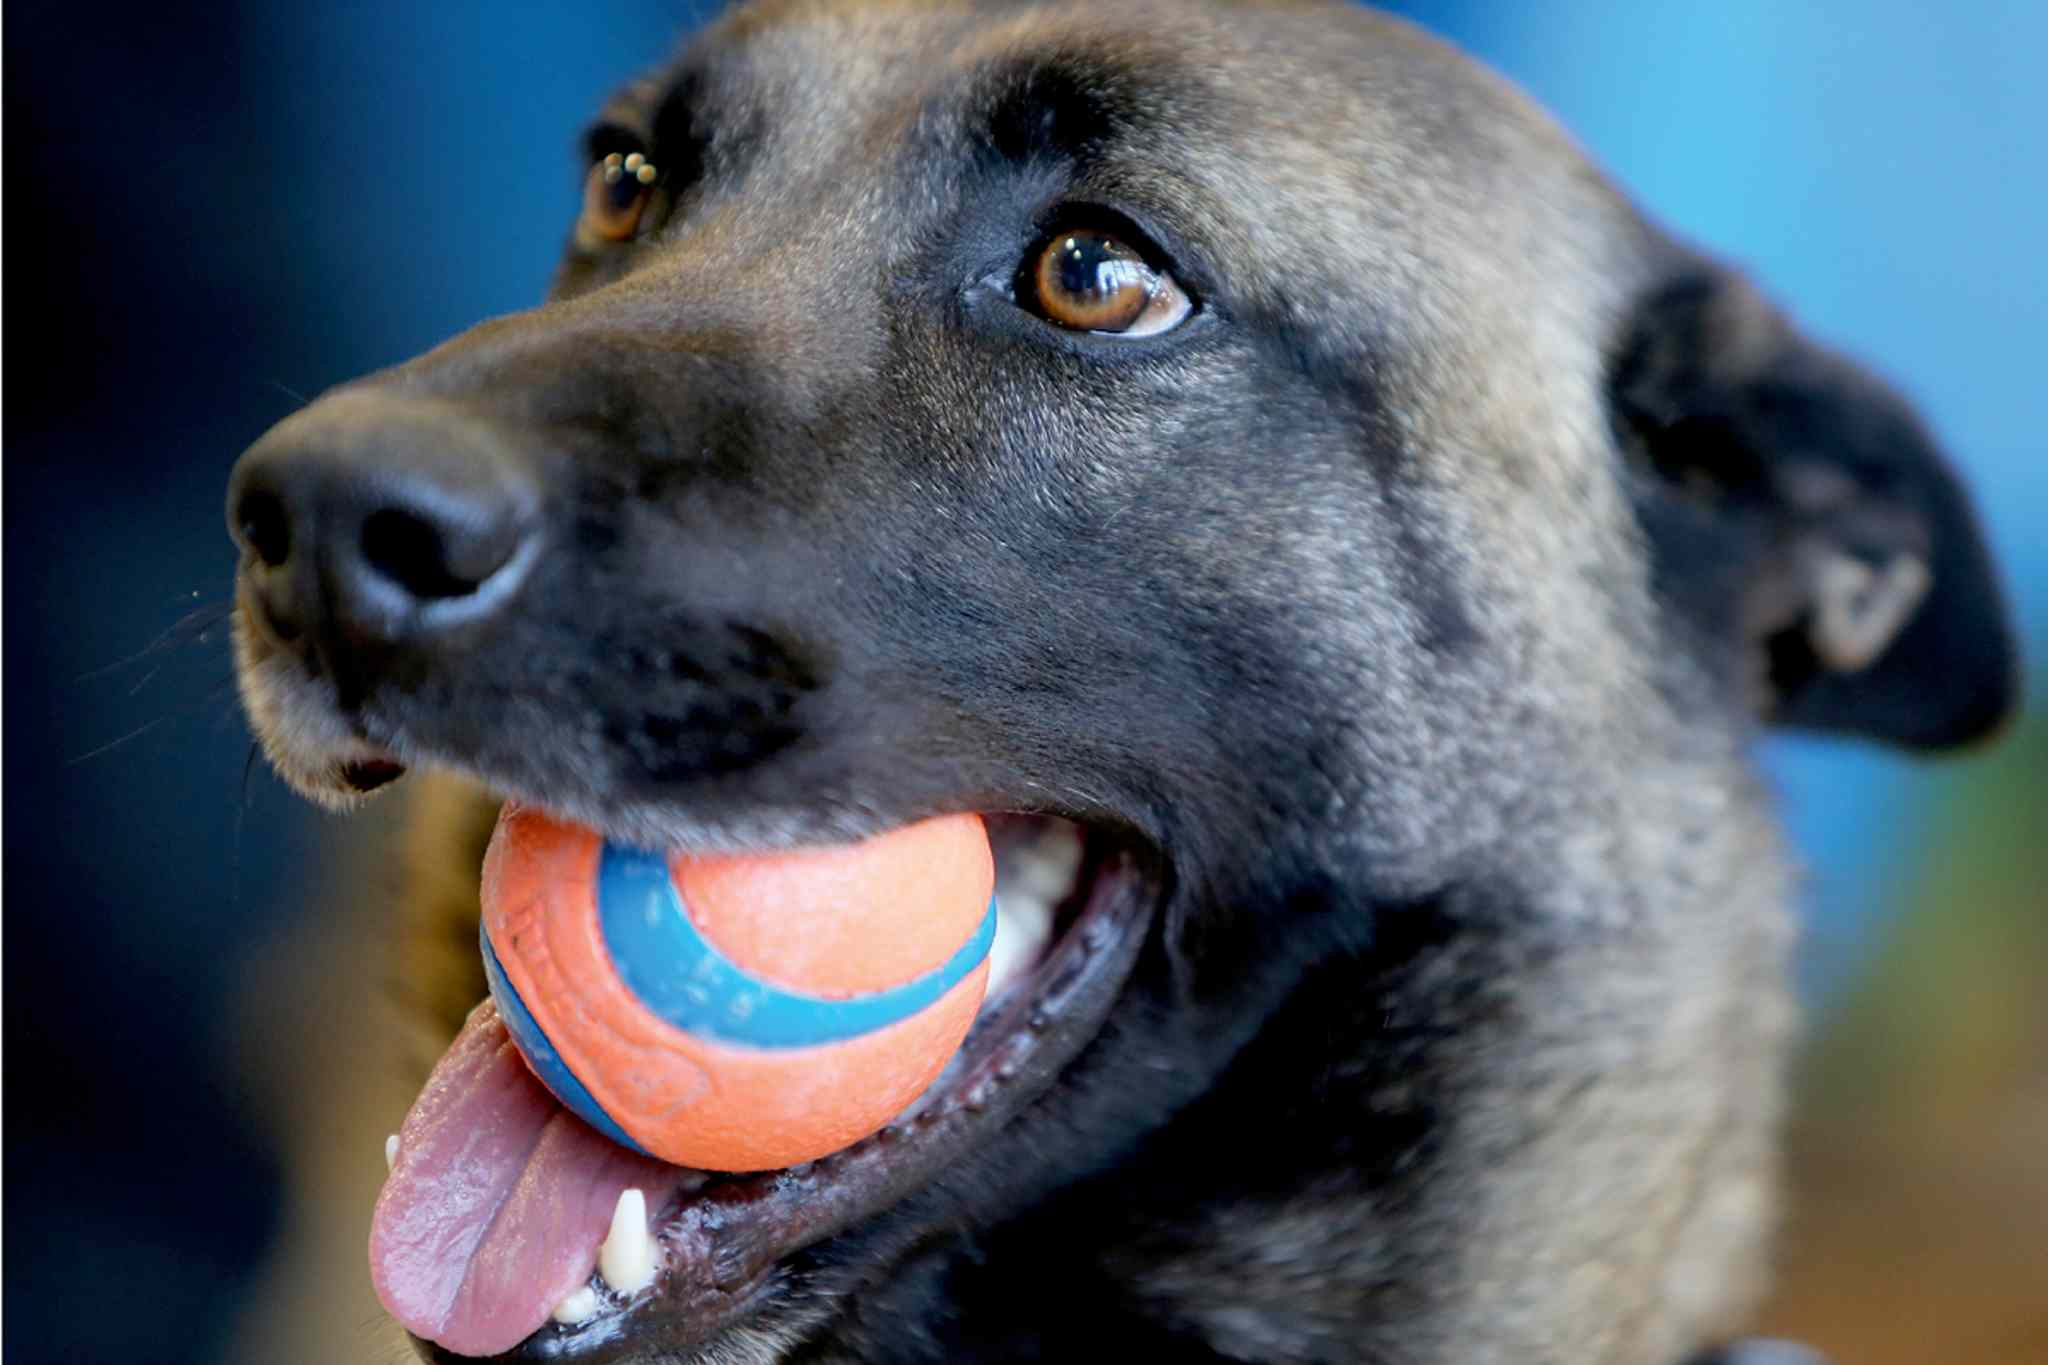 Mya, a Winnipeg Police Service K-9 Unit dog, is pictured in a file photo at Petland on Regent Avenue on Sat., April 13. The WPS has announced it is releasing a calendar showcasing the service's loyal canines, with proceeds going to the Winnipeg Humane Society.